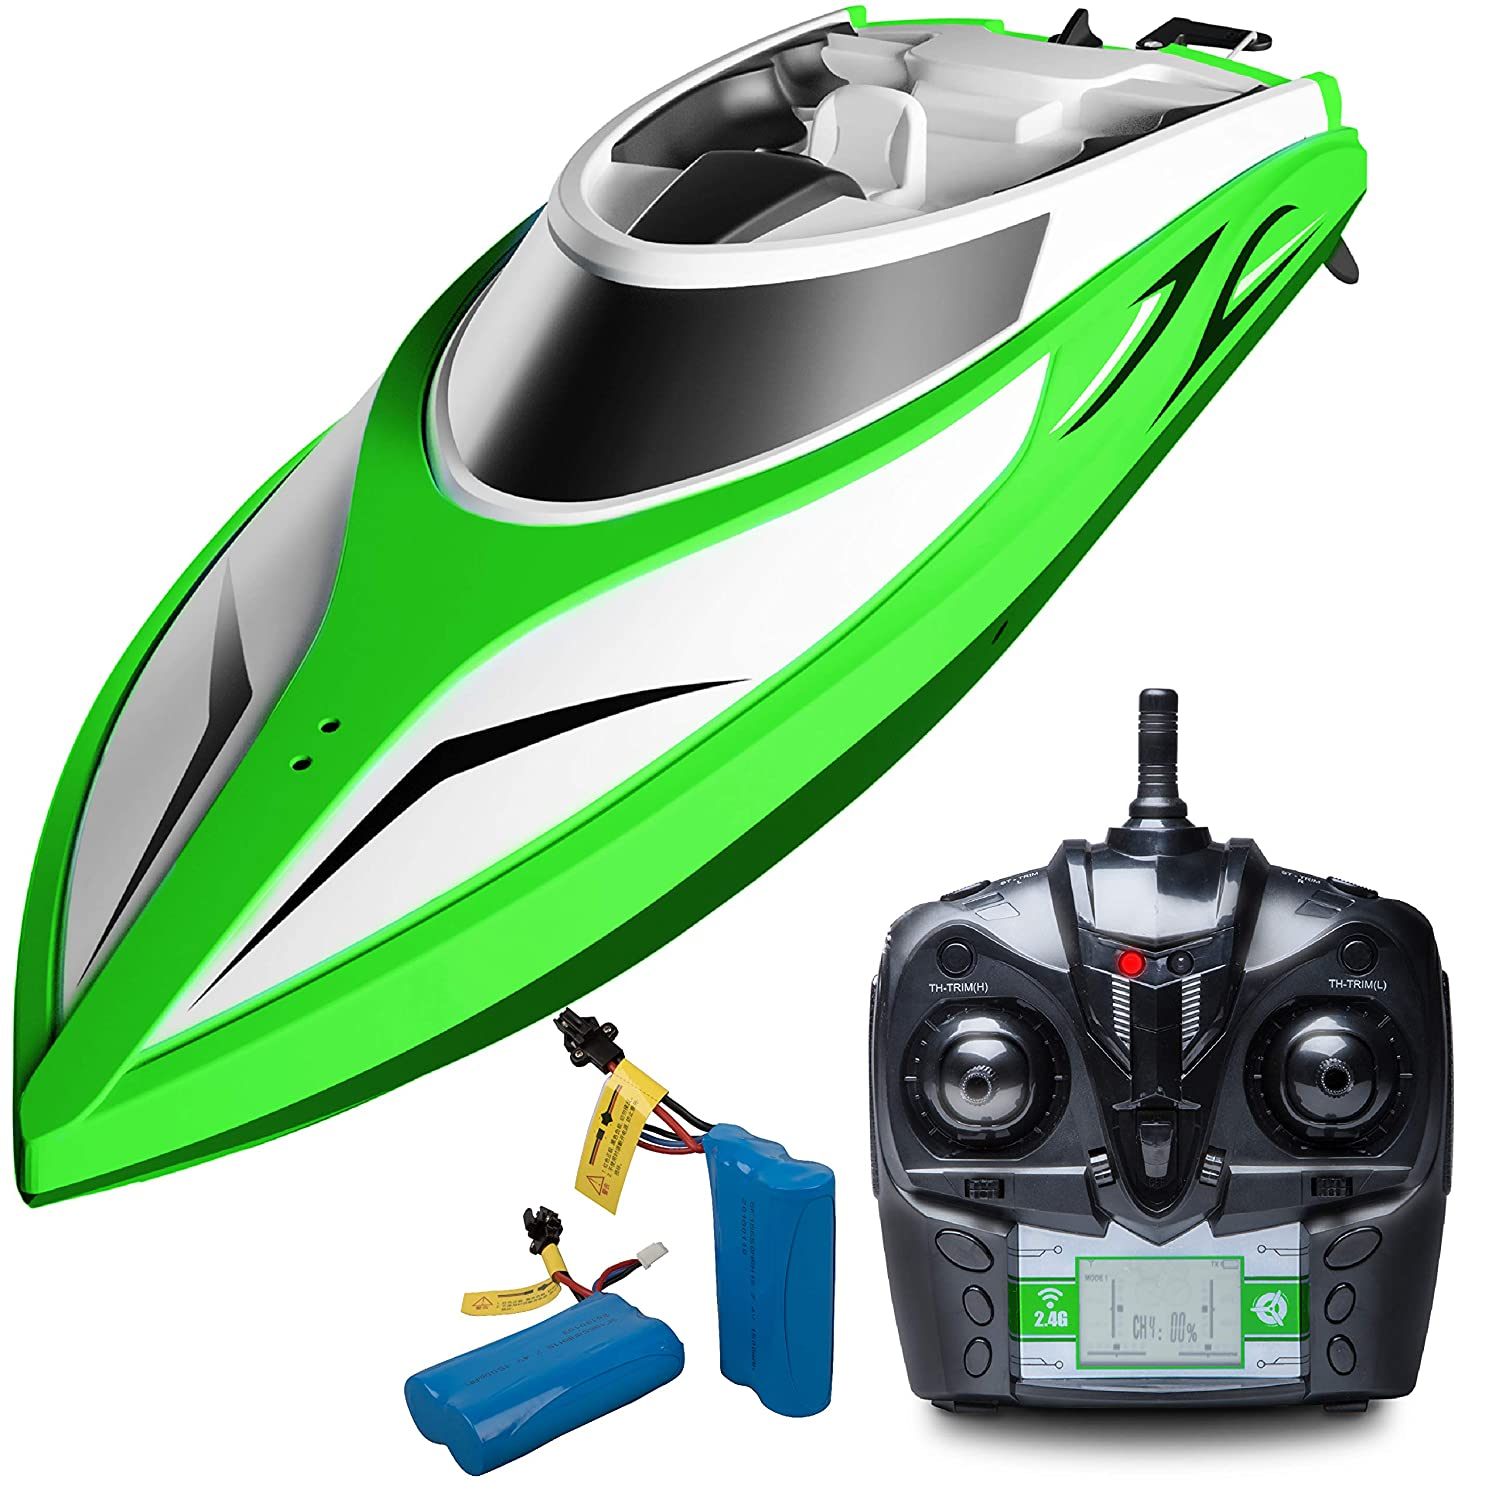 Remote Control Boats for Pools and Lakes - H105 High Speed Remote Controlled Boat, Self Righting Brushless RC Boats for Kids or Adults (Green/Large)